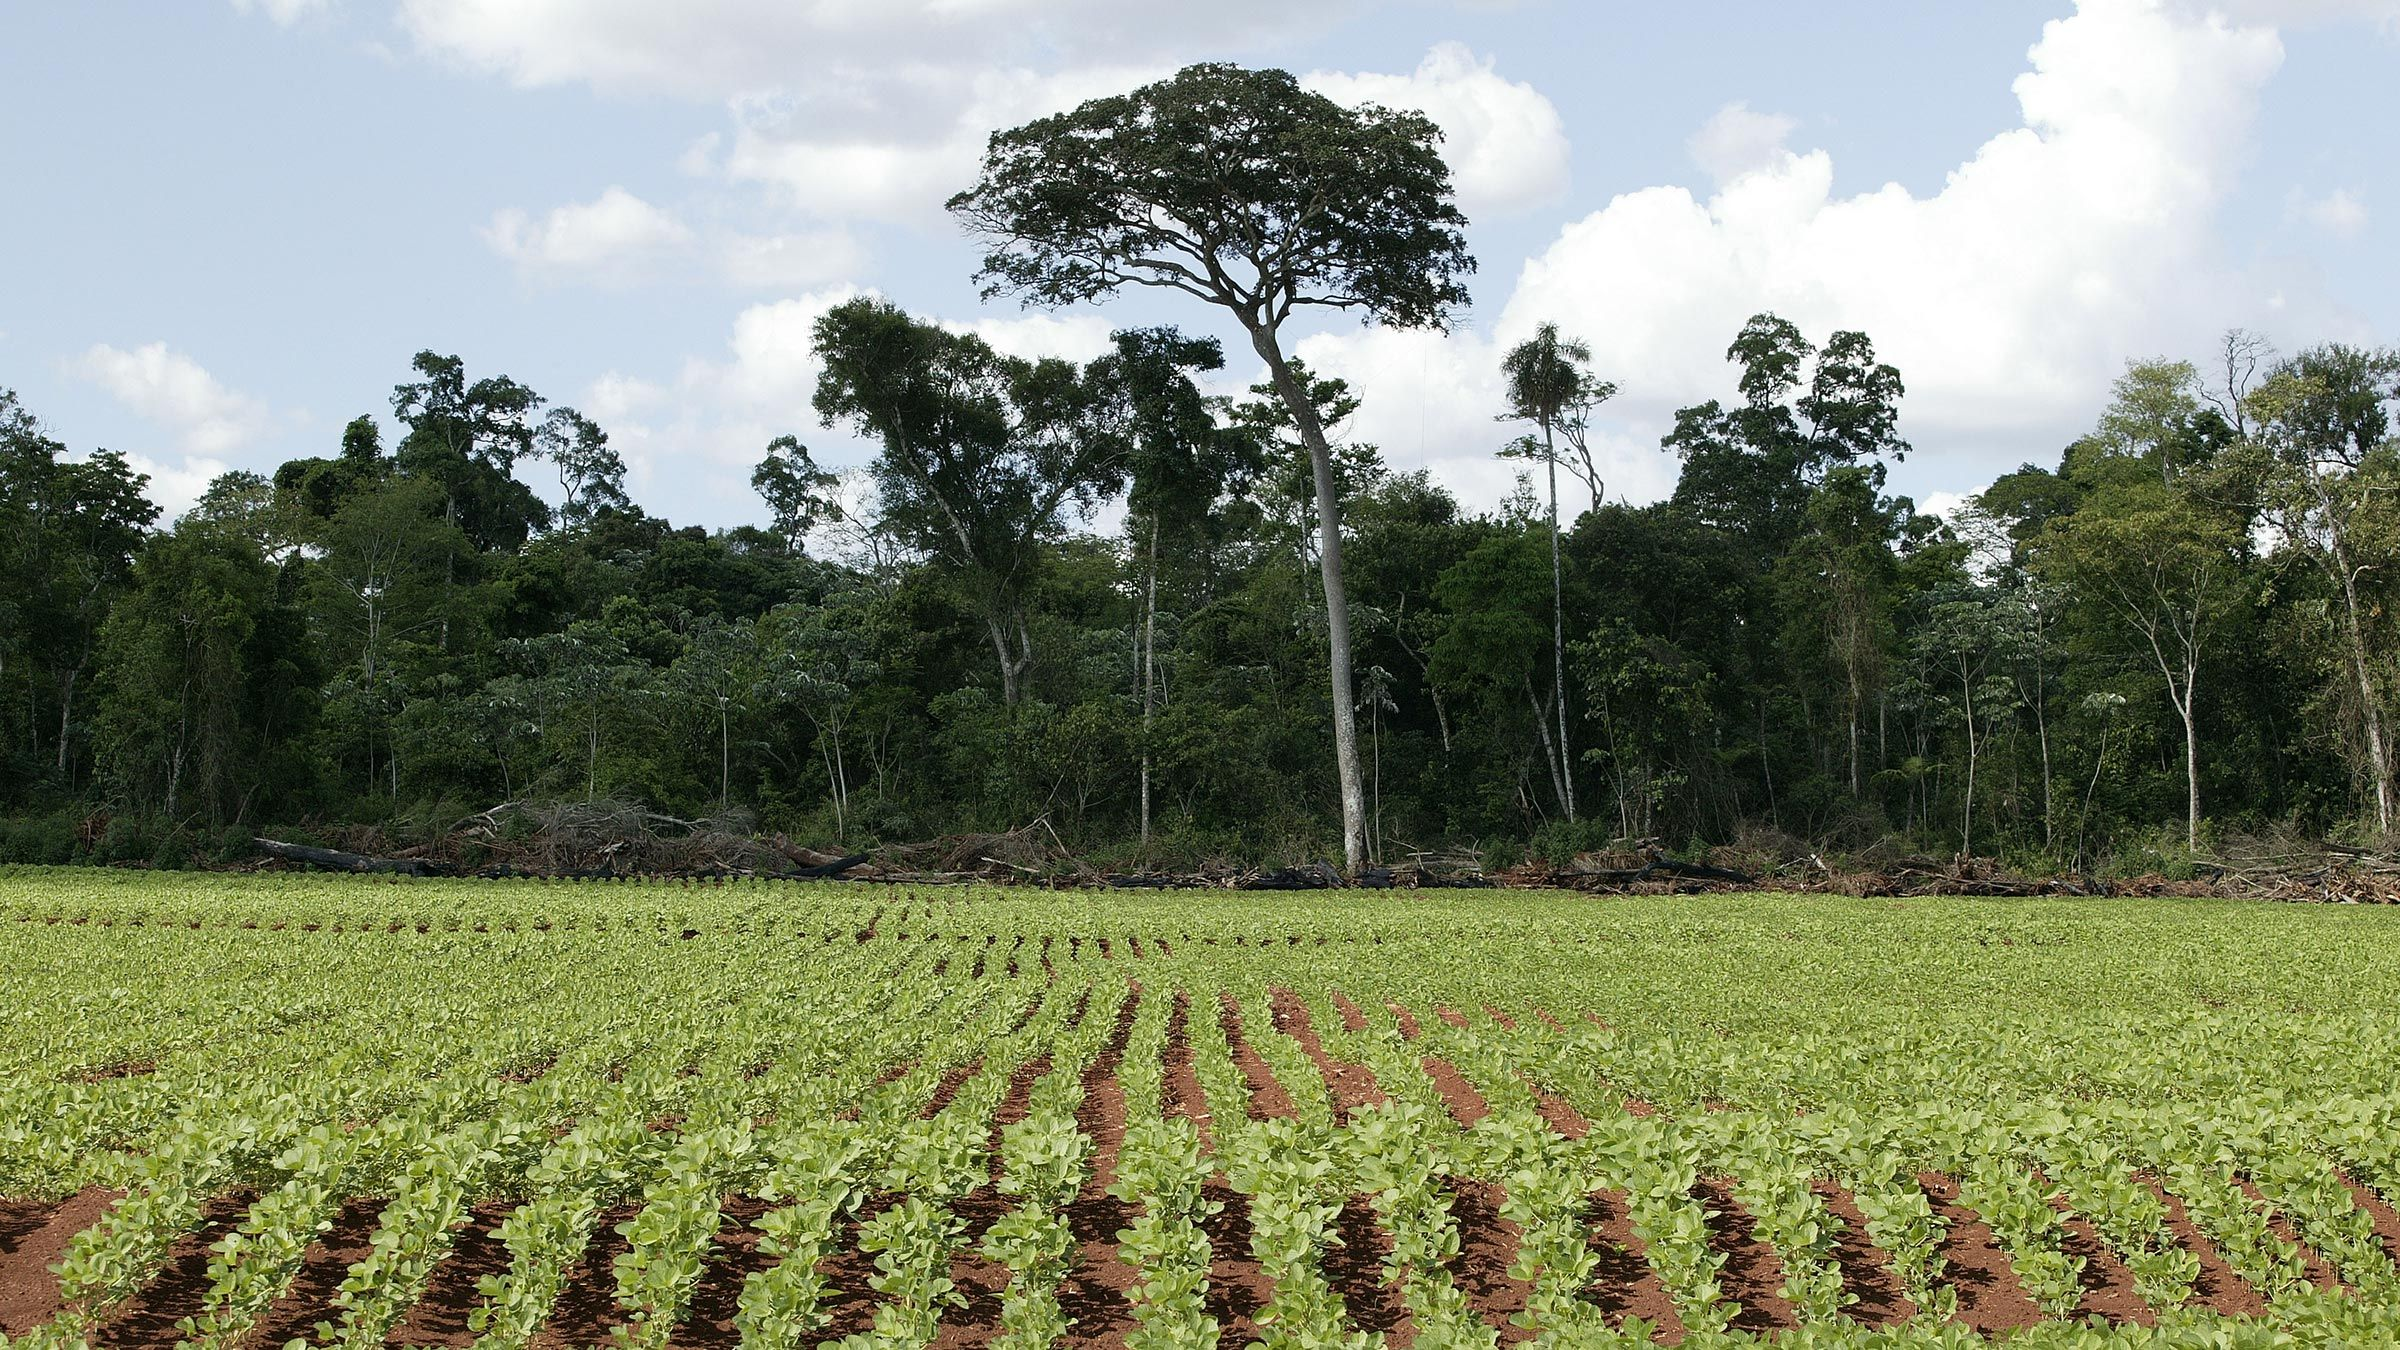 SOY PRODUCTION IN PARAGUAY